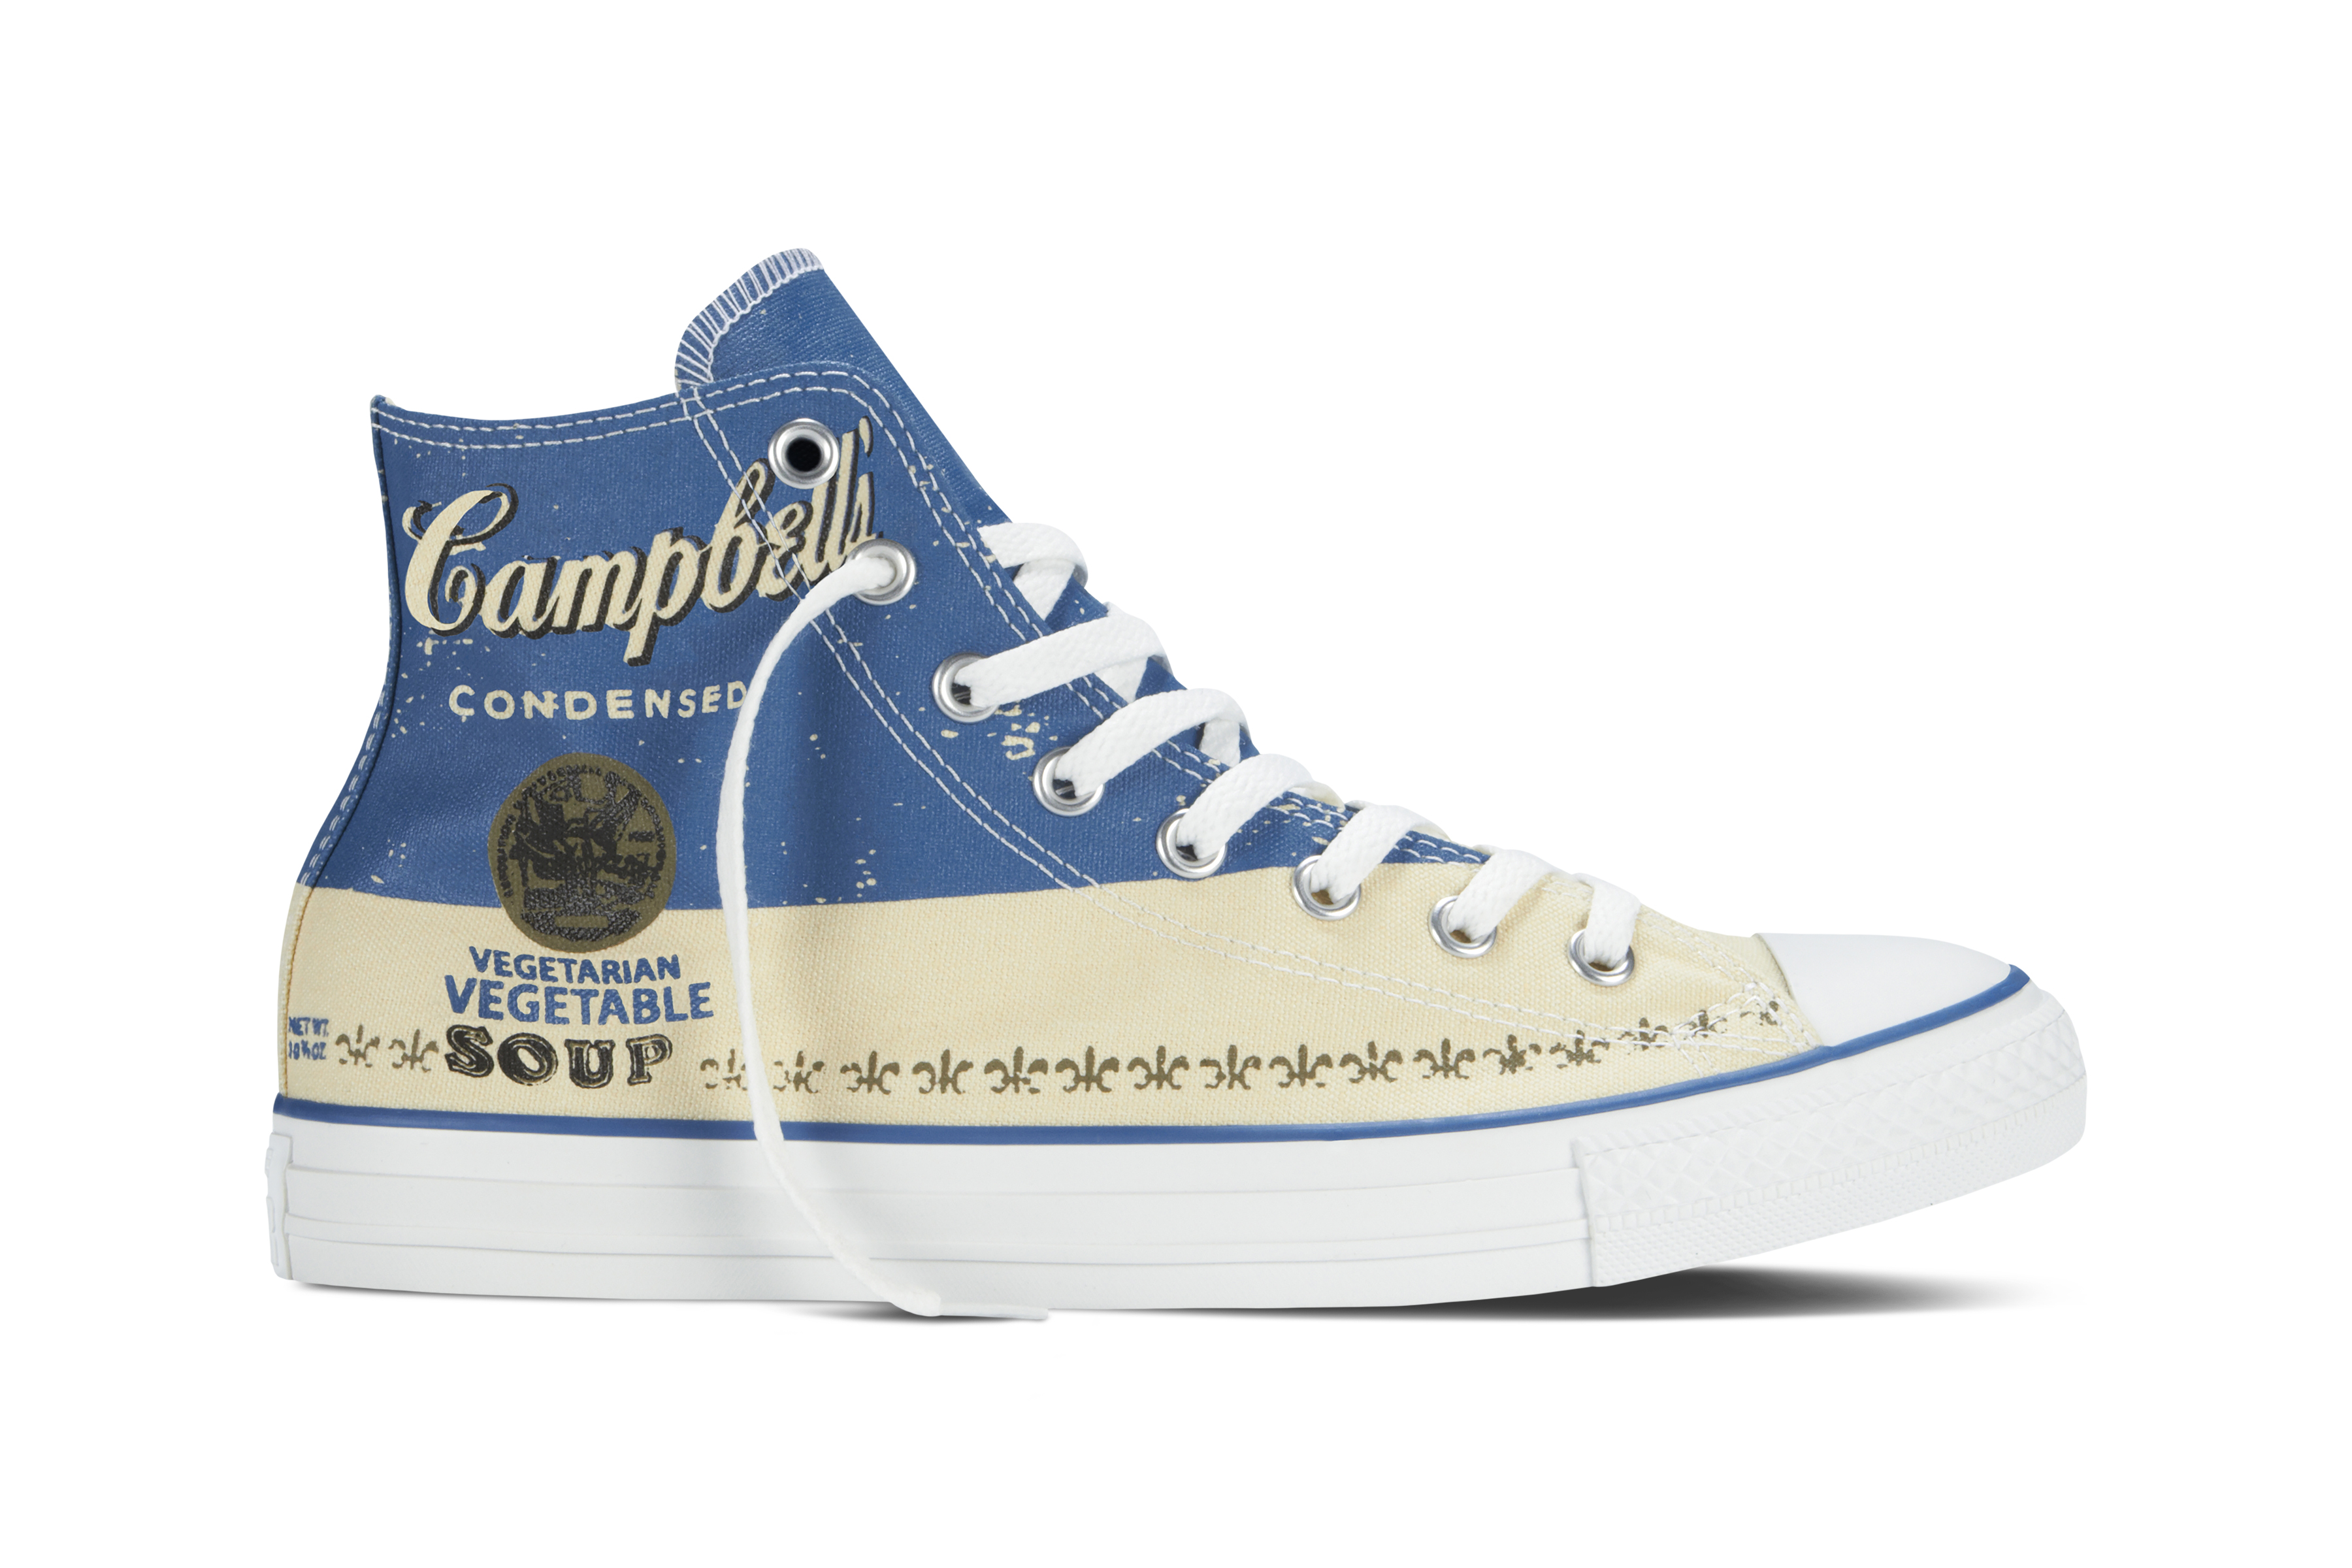 e12ede7710fb Converse Celebrates the Creative Spirit of Andy Warhol. Download Image LO ·  HI Converse Celebrates Andy Warhol with Spring 2015 All Star ...